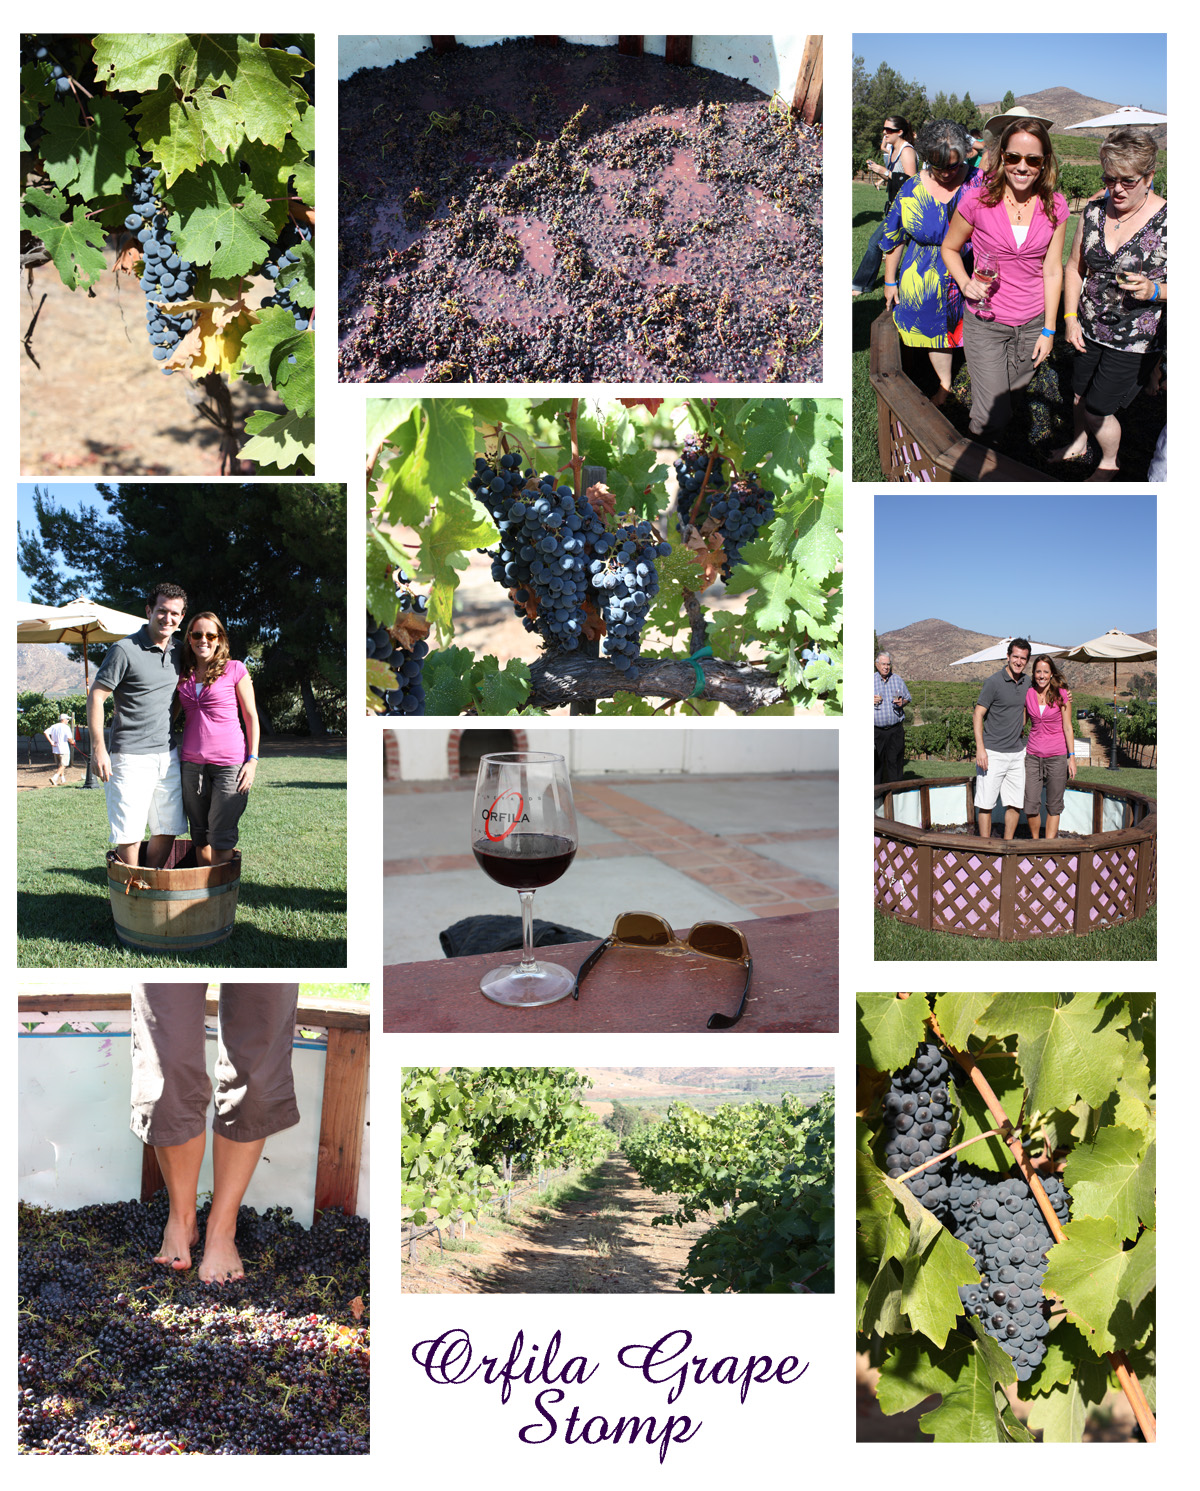 Orfila Grape Stomp